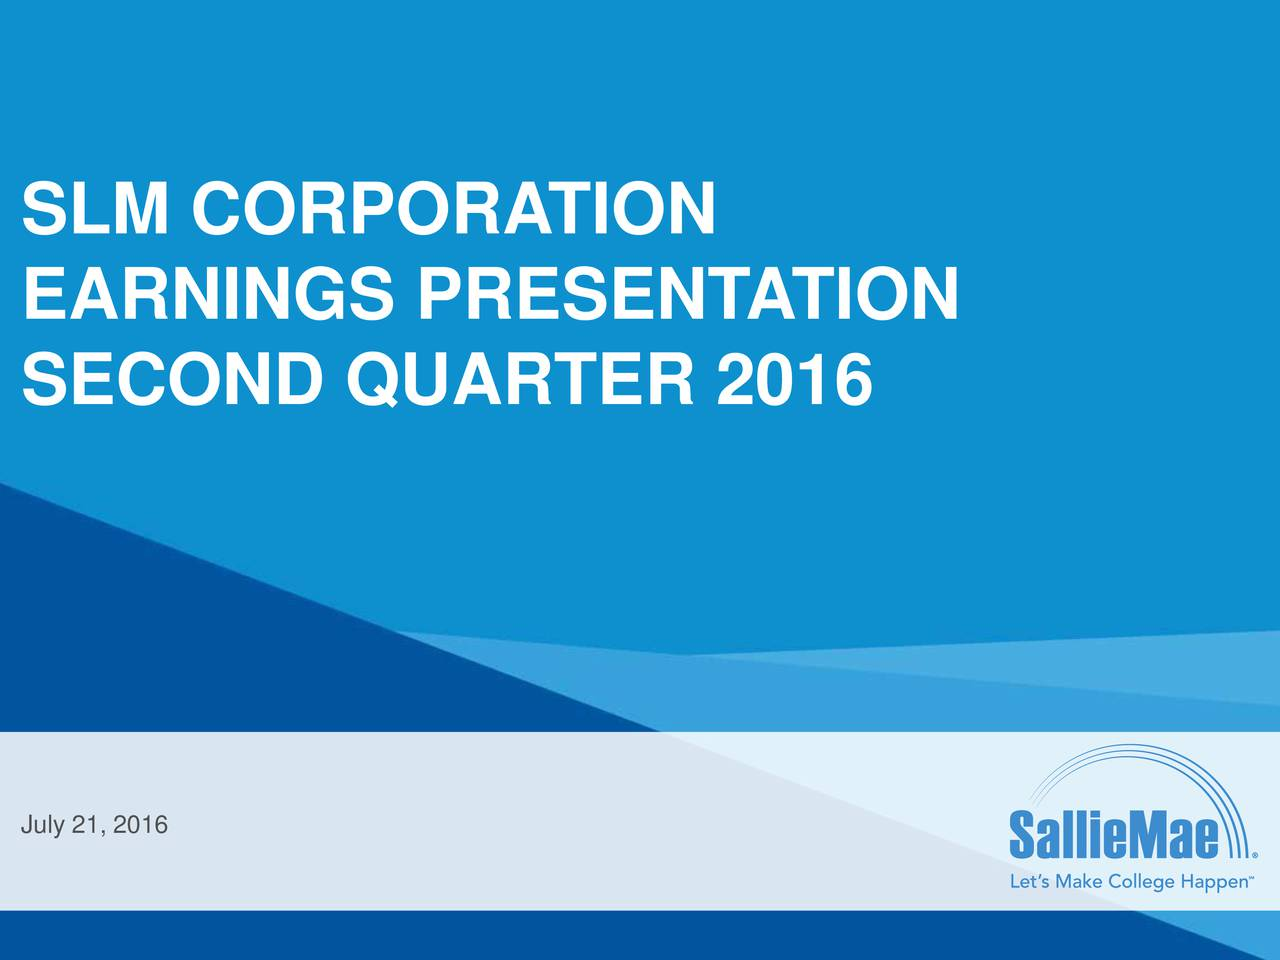 EARNINGS PRESENT ATION SECOND QUARTER 2016 July 21, 2016